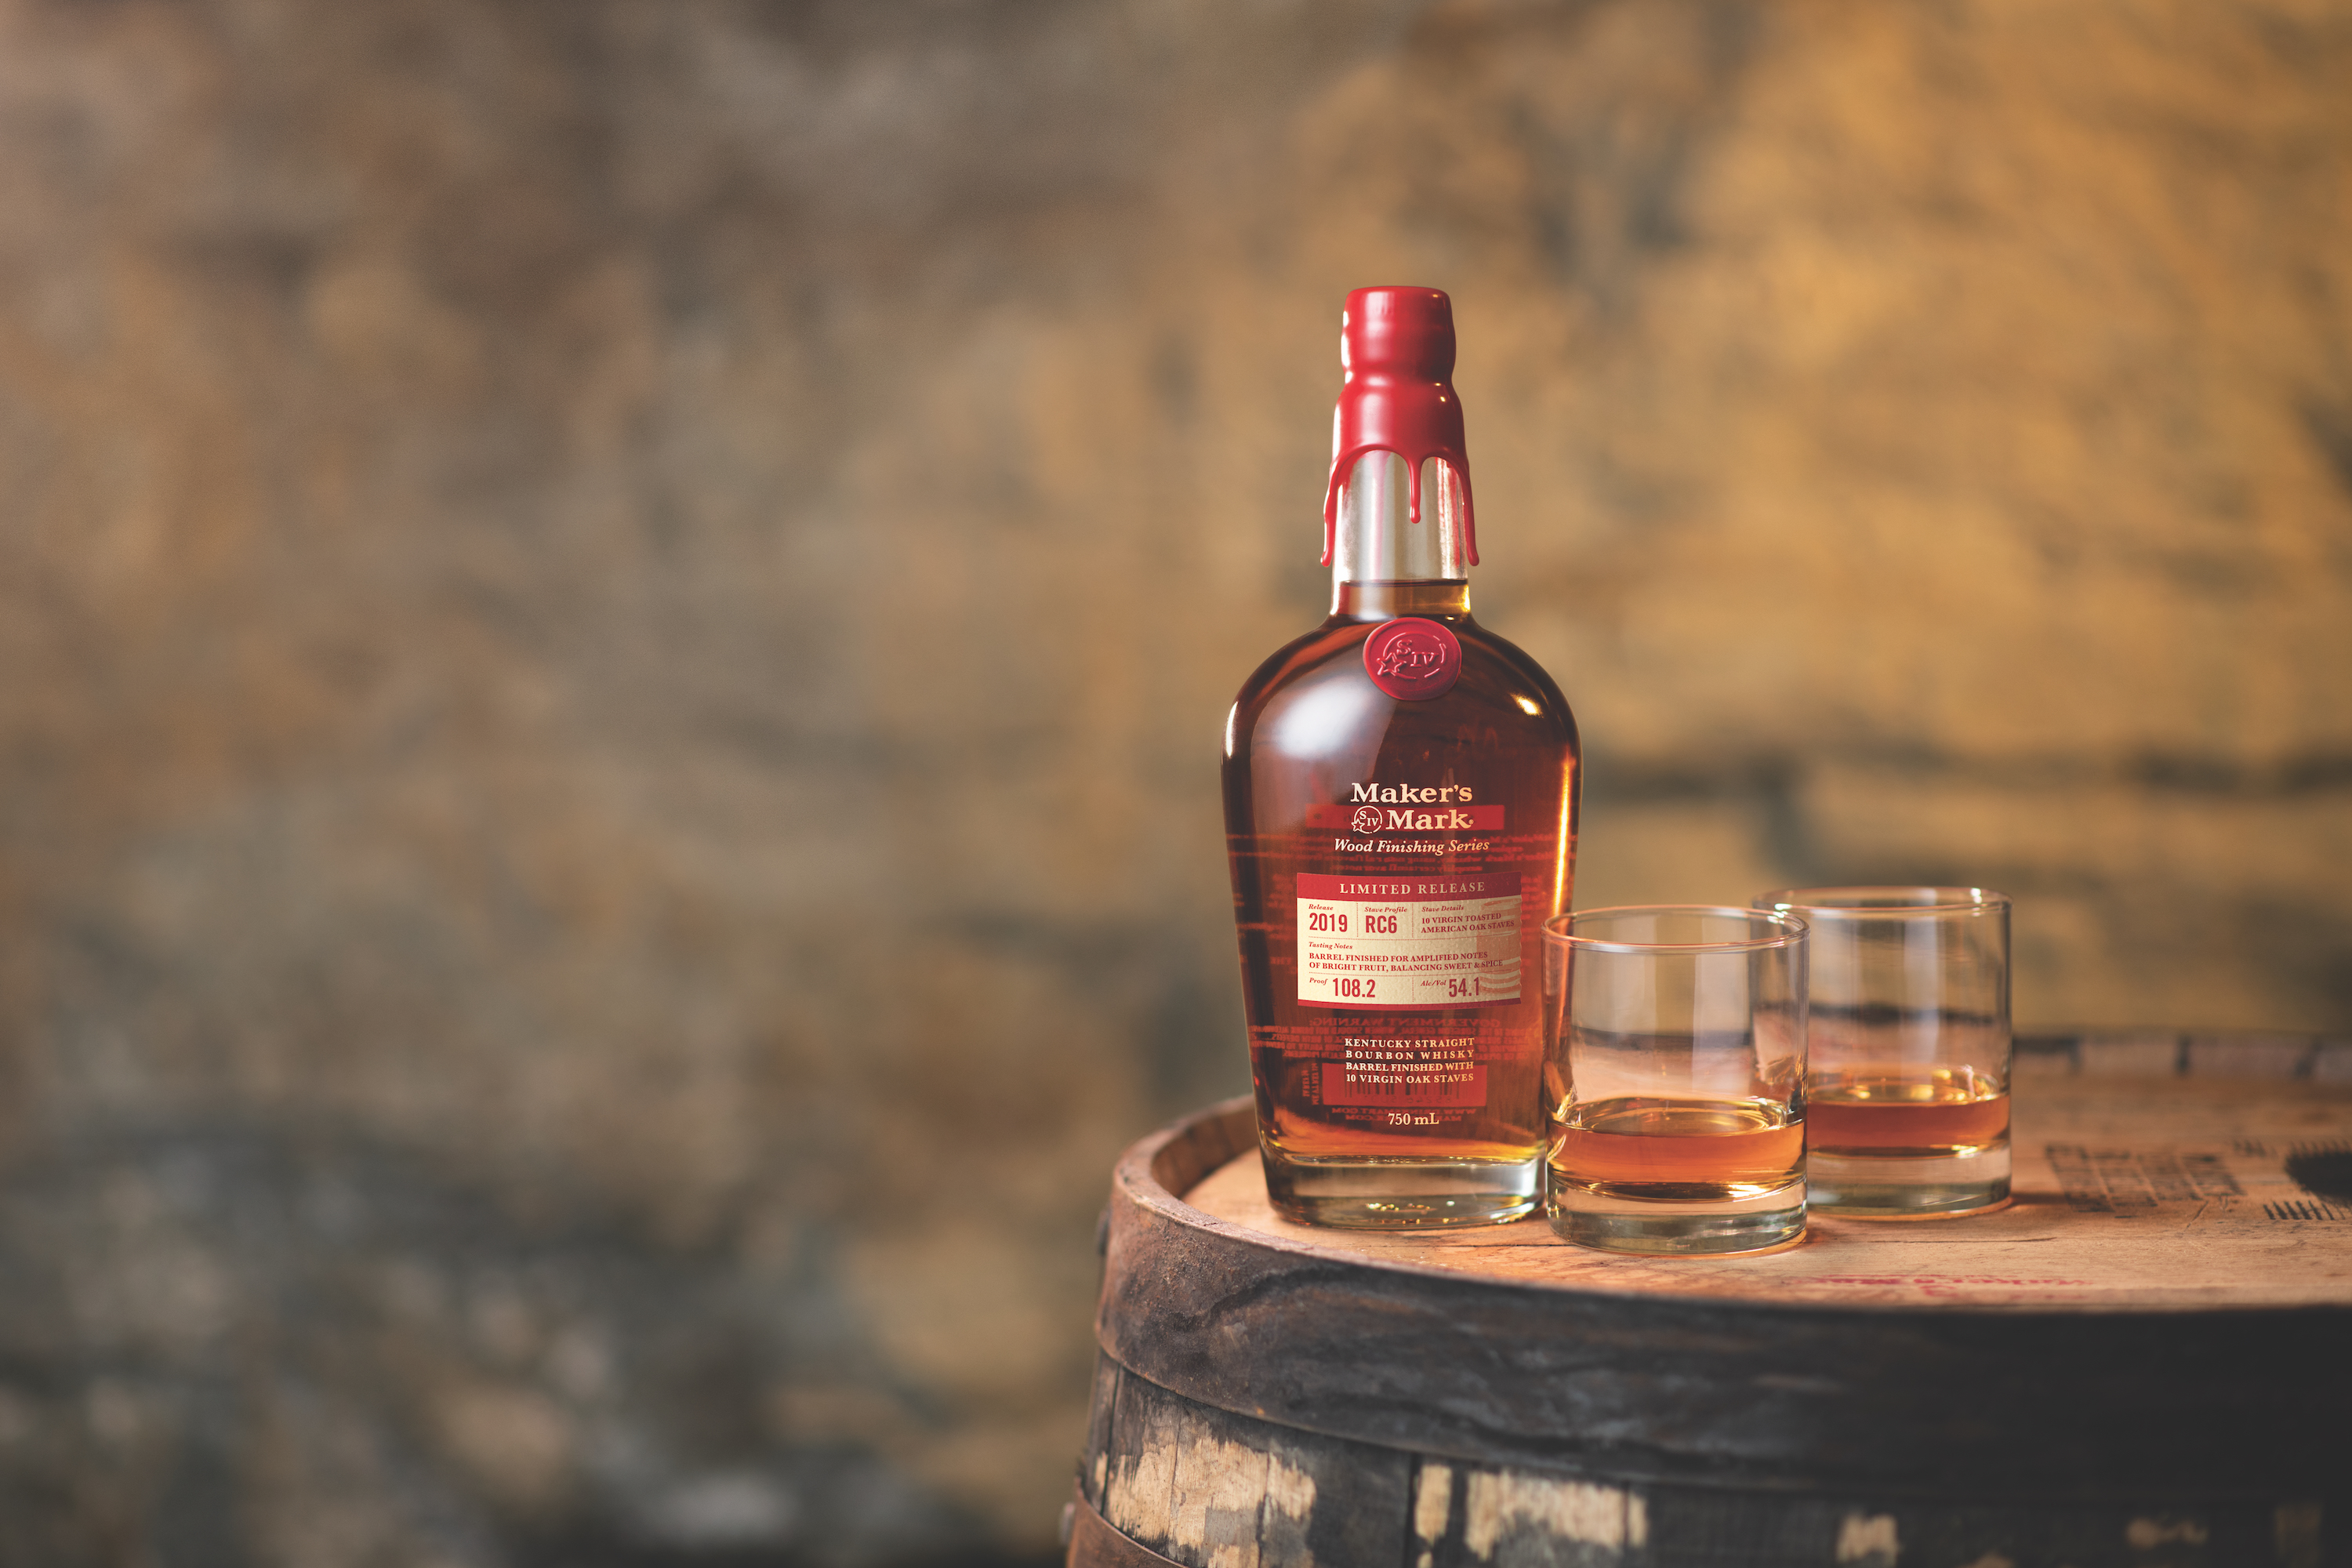 The special Limited Edition release was crafted to feature pronounced fruity notes with a brighter finish while retaining the qualities of the original Maker's Mark.